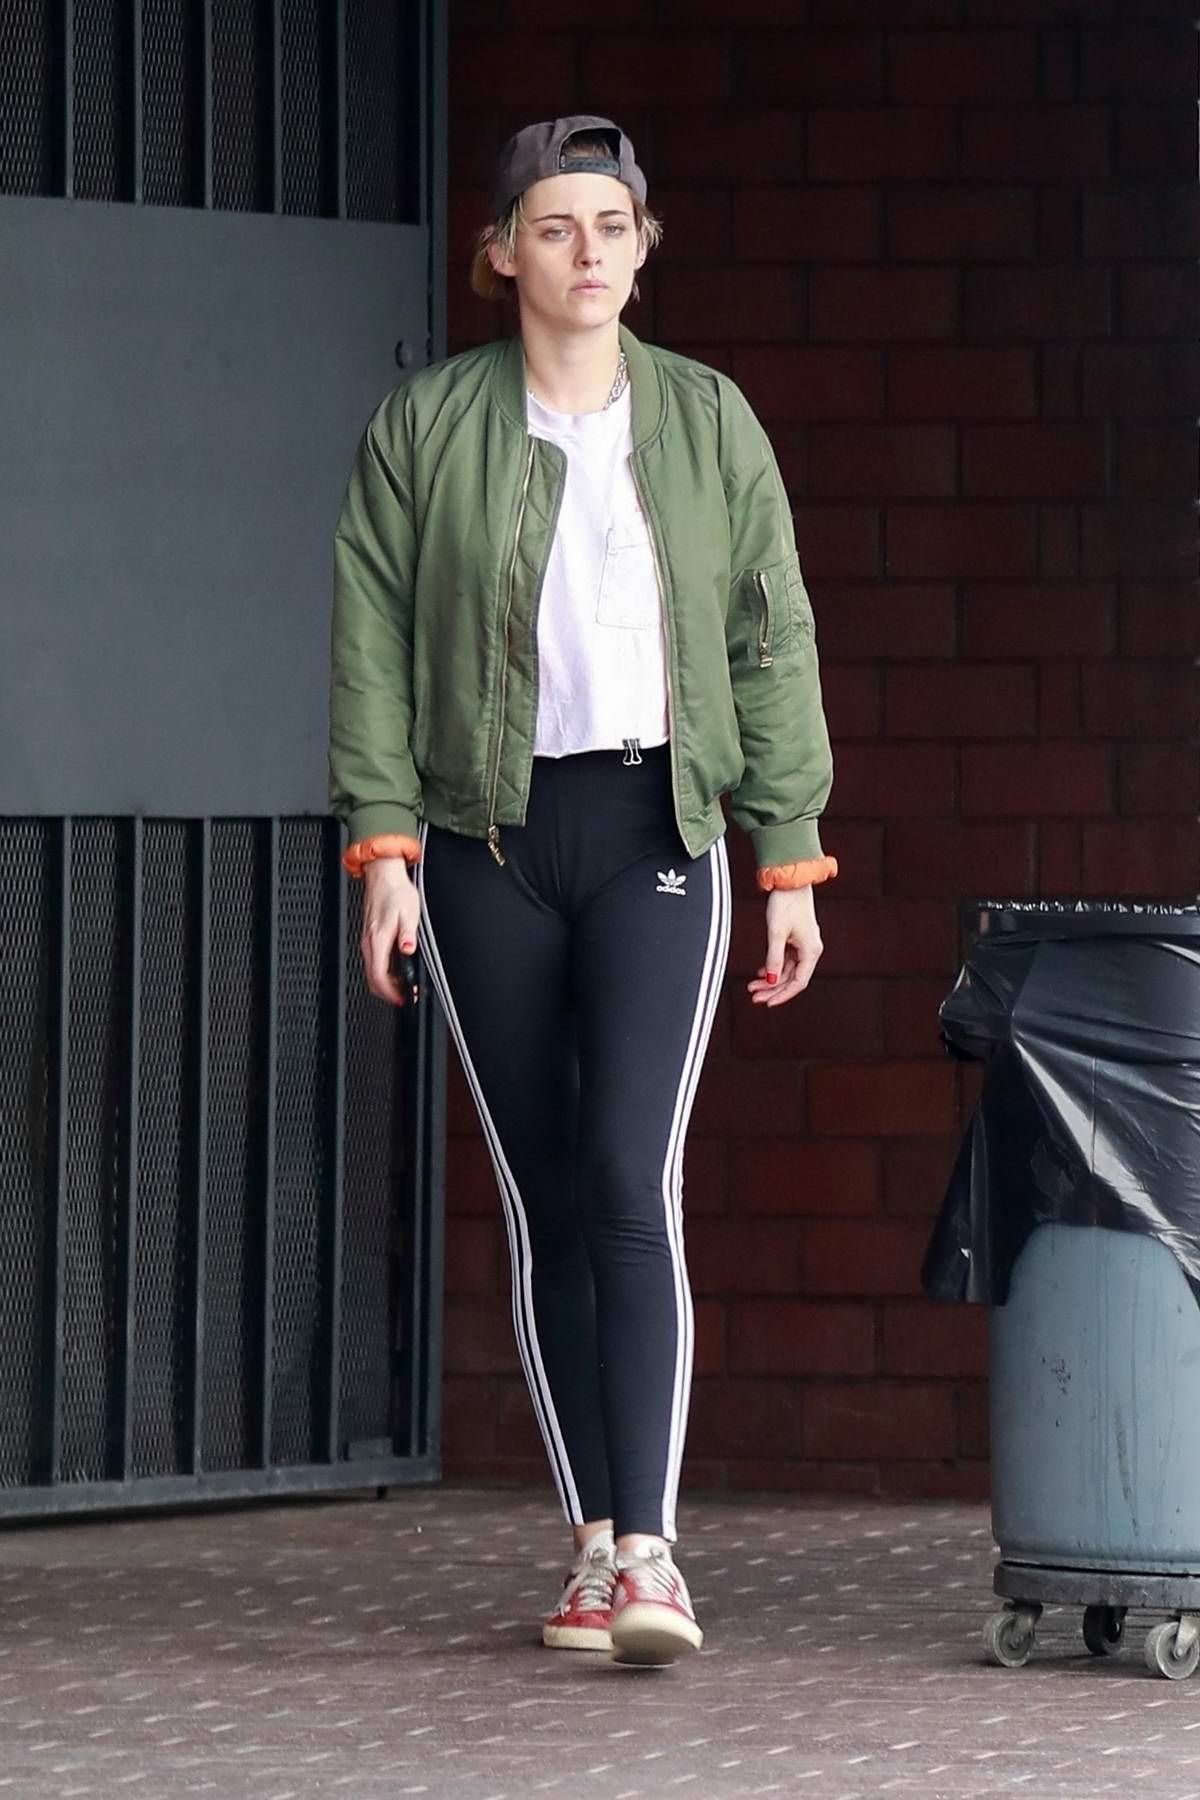 Kristen Stewart wears a green jacket and black Adidas leggings while visiting a Nail Salon in Hollywood, California